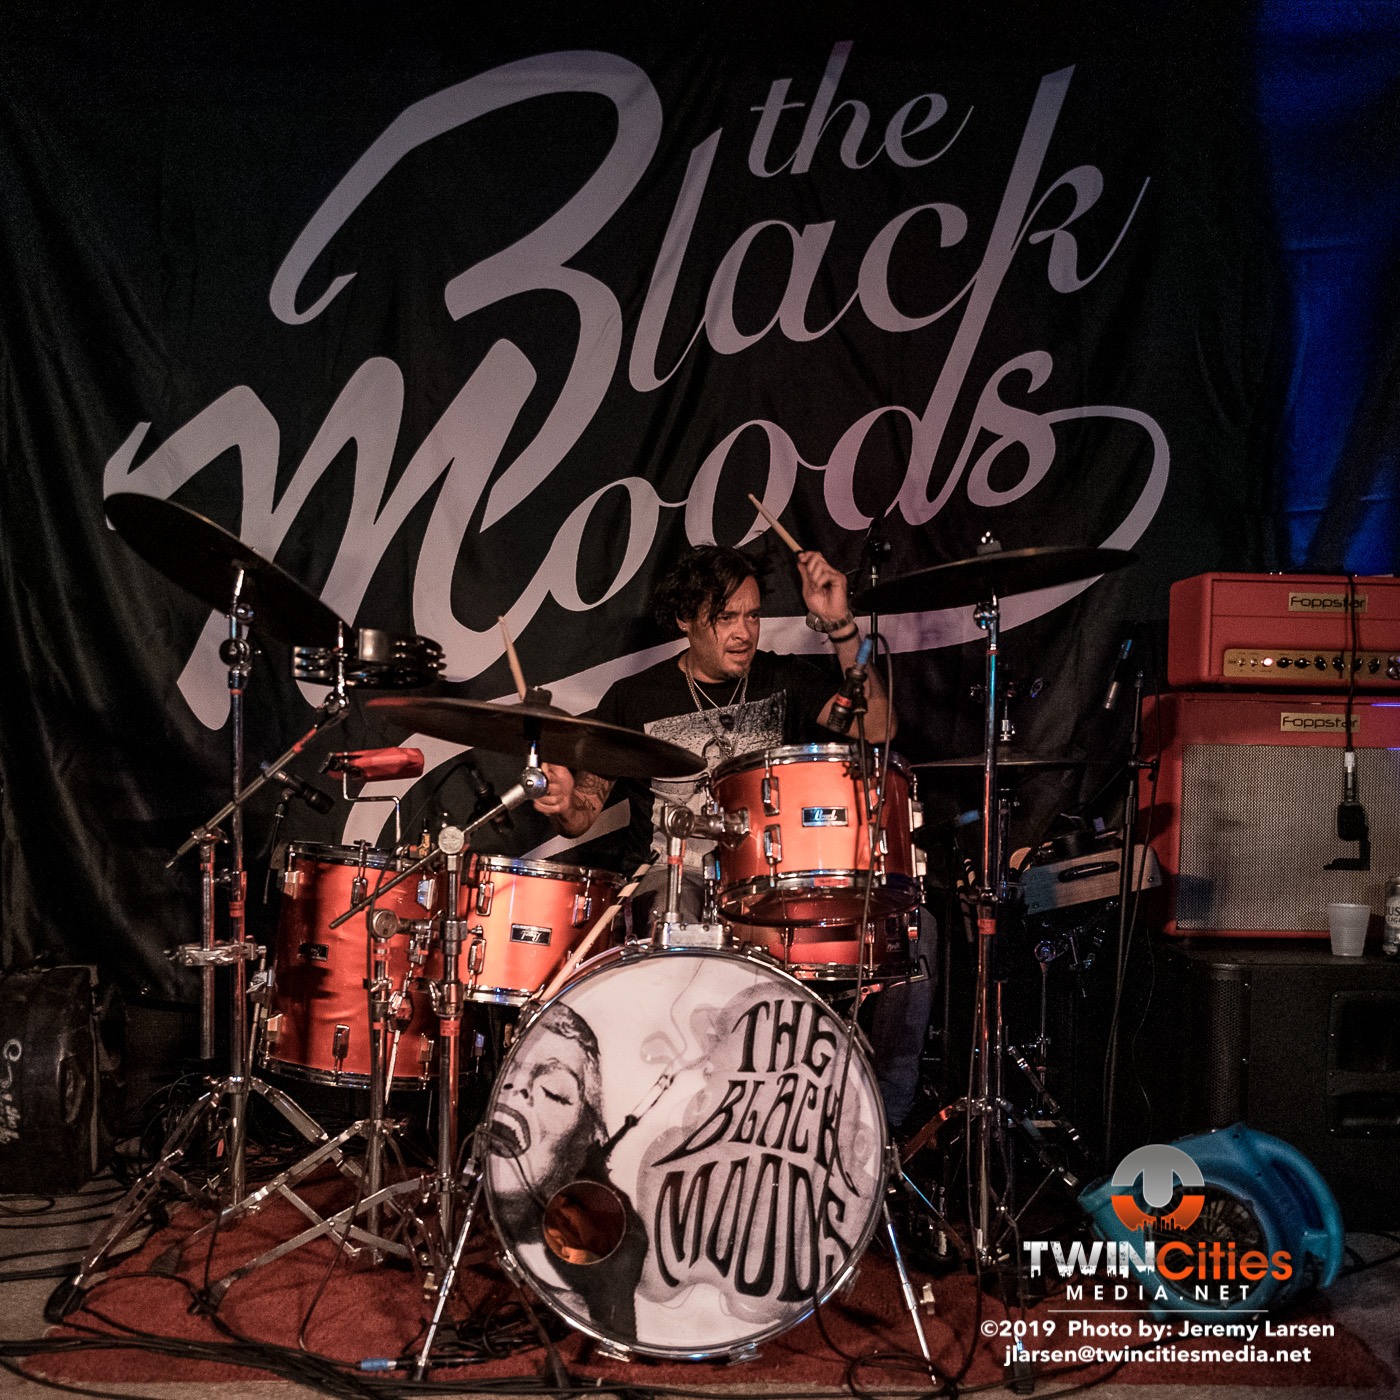 20190718-The-Black-Moods-The-Whats-Up-Lounge-3